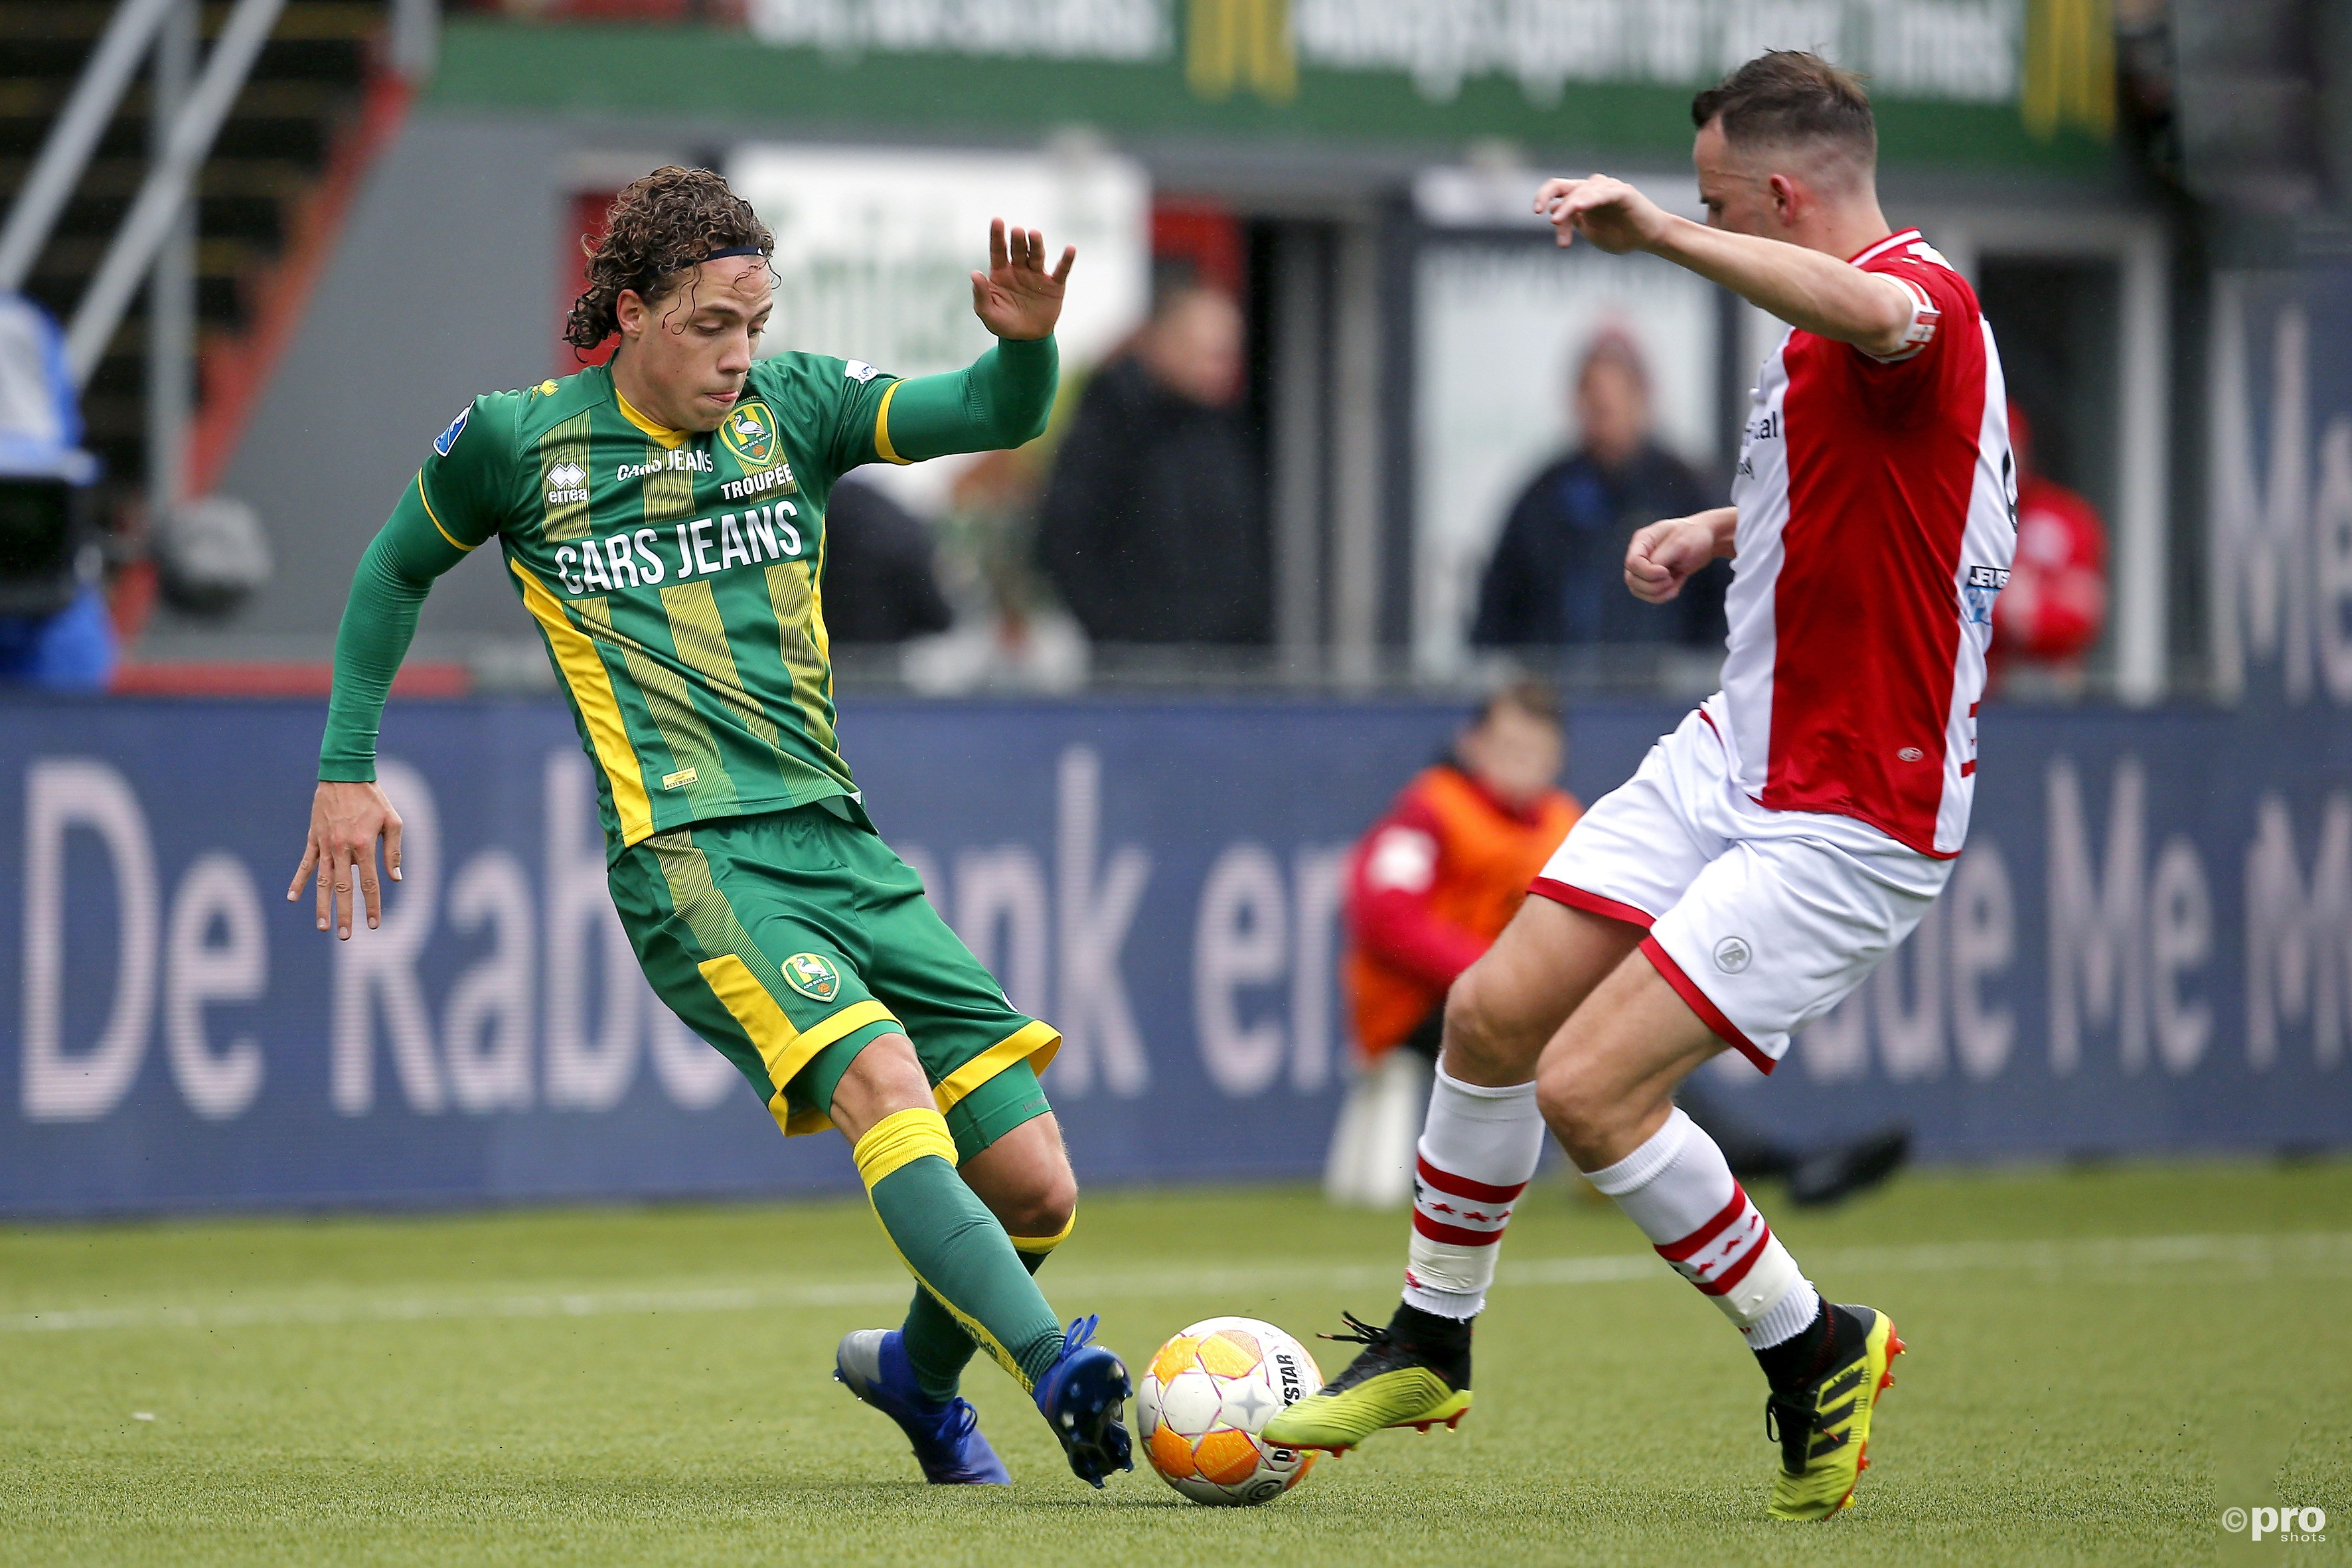 ADO Den Haag player Giovanni Troupee (L) and FC Emmen player Anco Jansen (R) during the game Emmen - ADO. (PRO SHOTS/Niels Boersema)